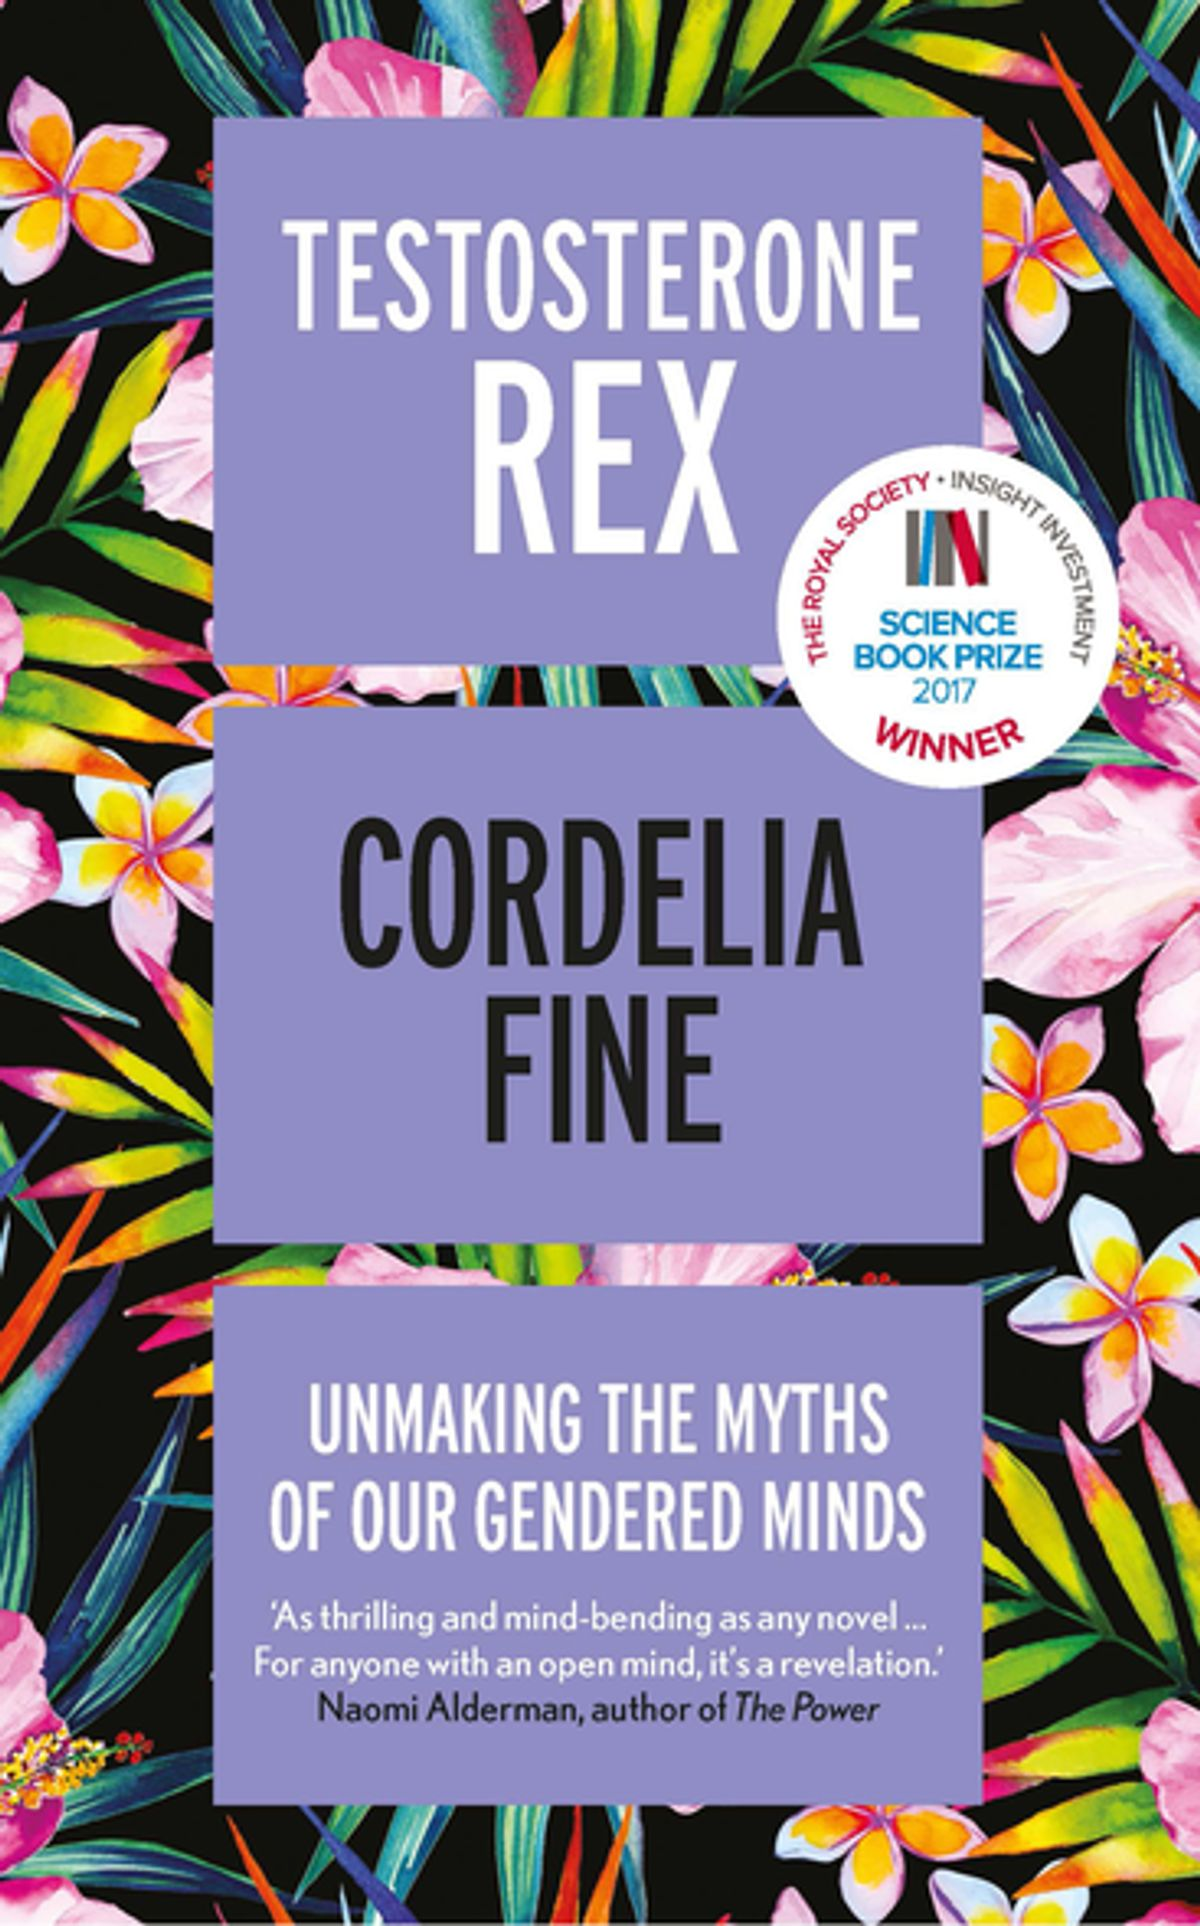 Testosterone RexUnmaking the Myths of Our Gendered Minds by Cordelia Fine, ISBN: 9781785781629